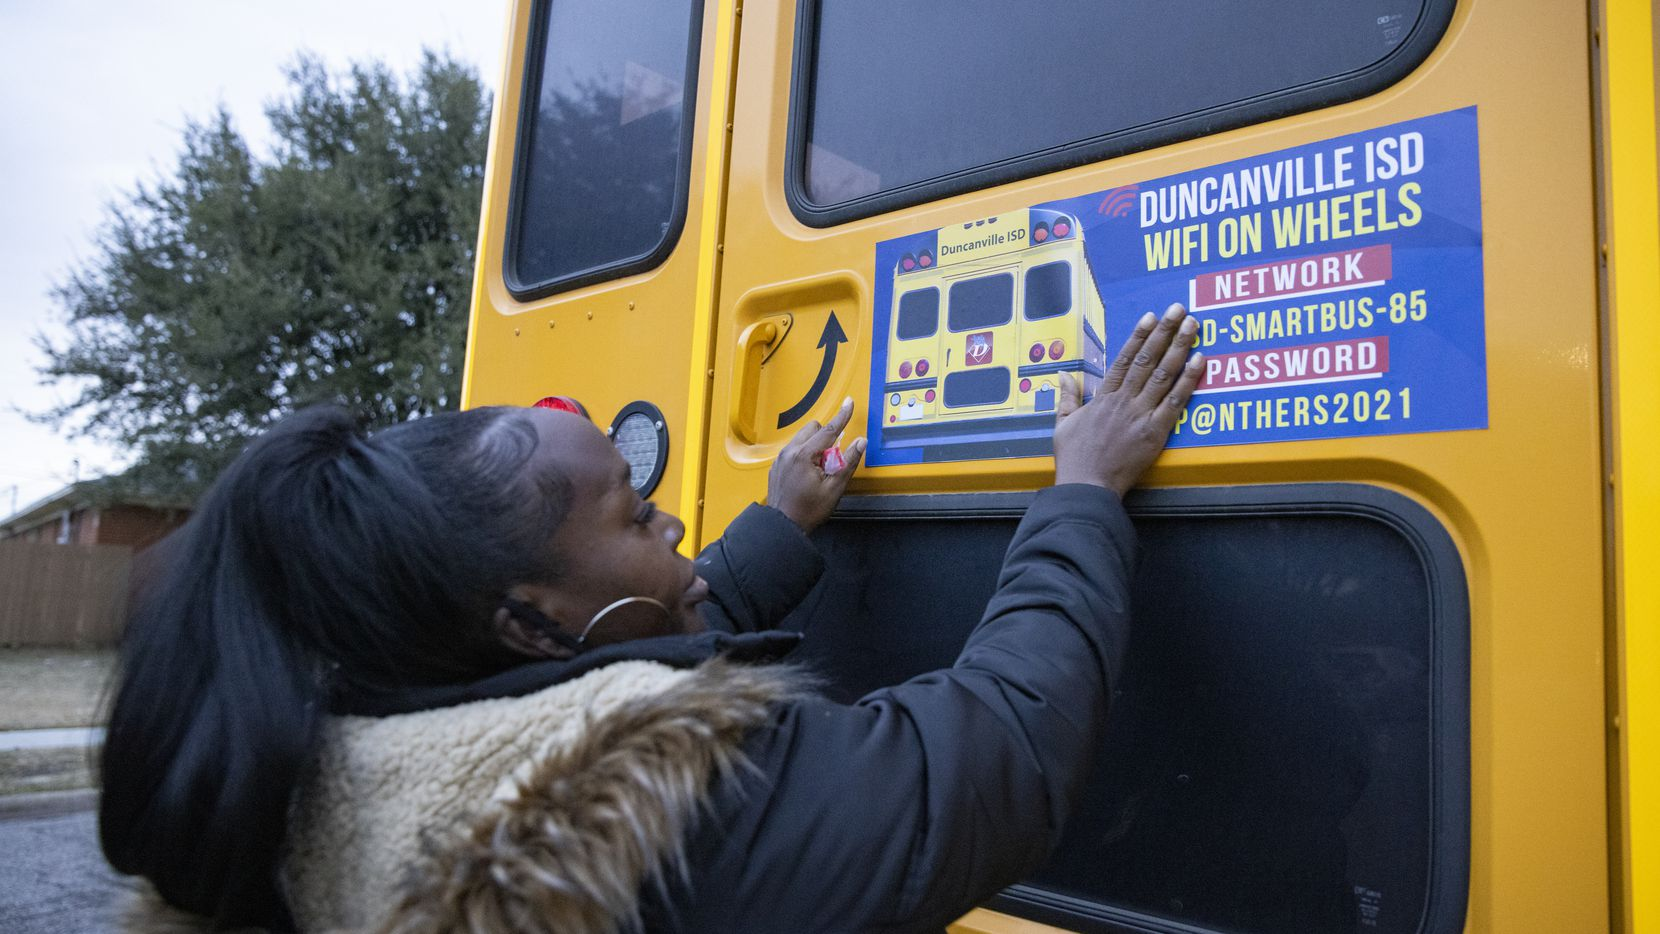 Duncanville ISD bus driver Stephanie Brown posts the network name and password on the Wi-Fi-equipped school bus parked outside the Renaissance Village apartment complex in Duncanville.